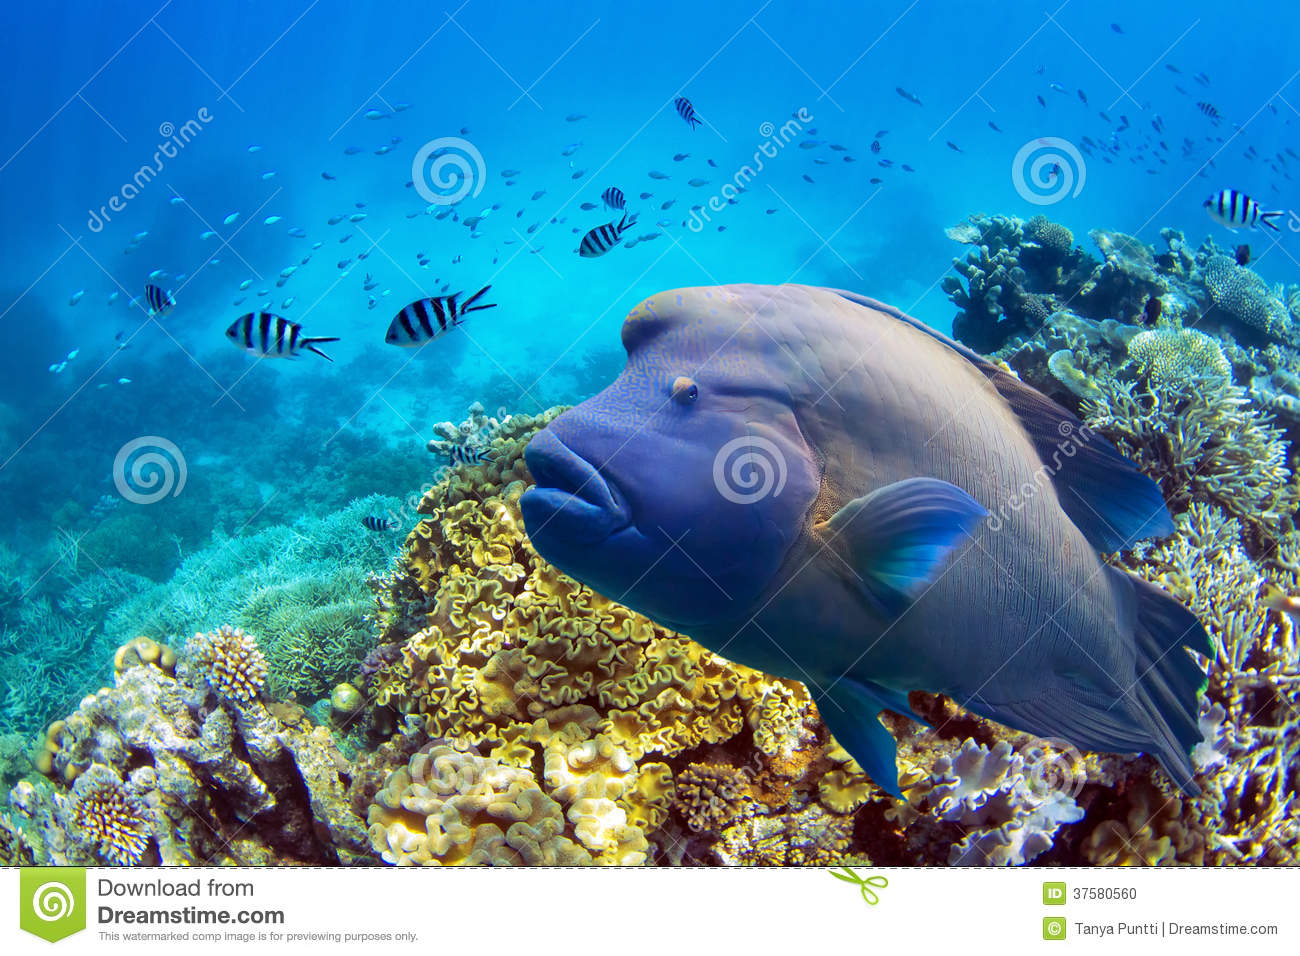 Fish at Great Barrier Reef